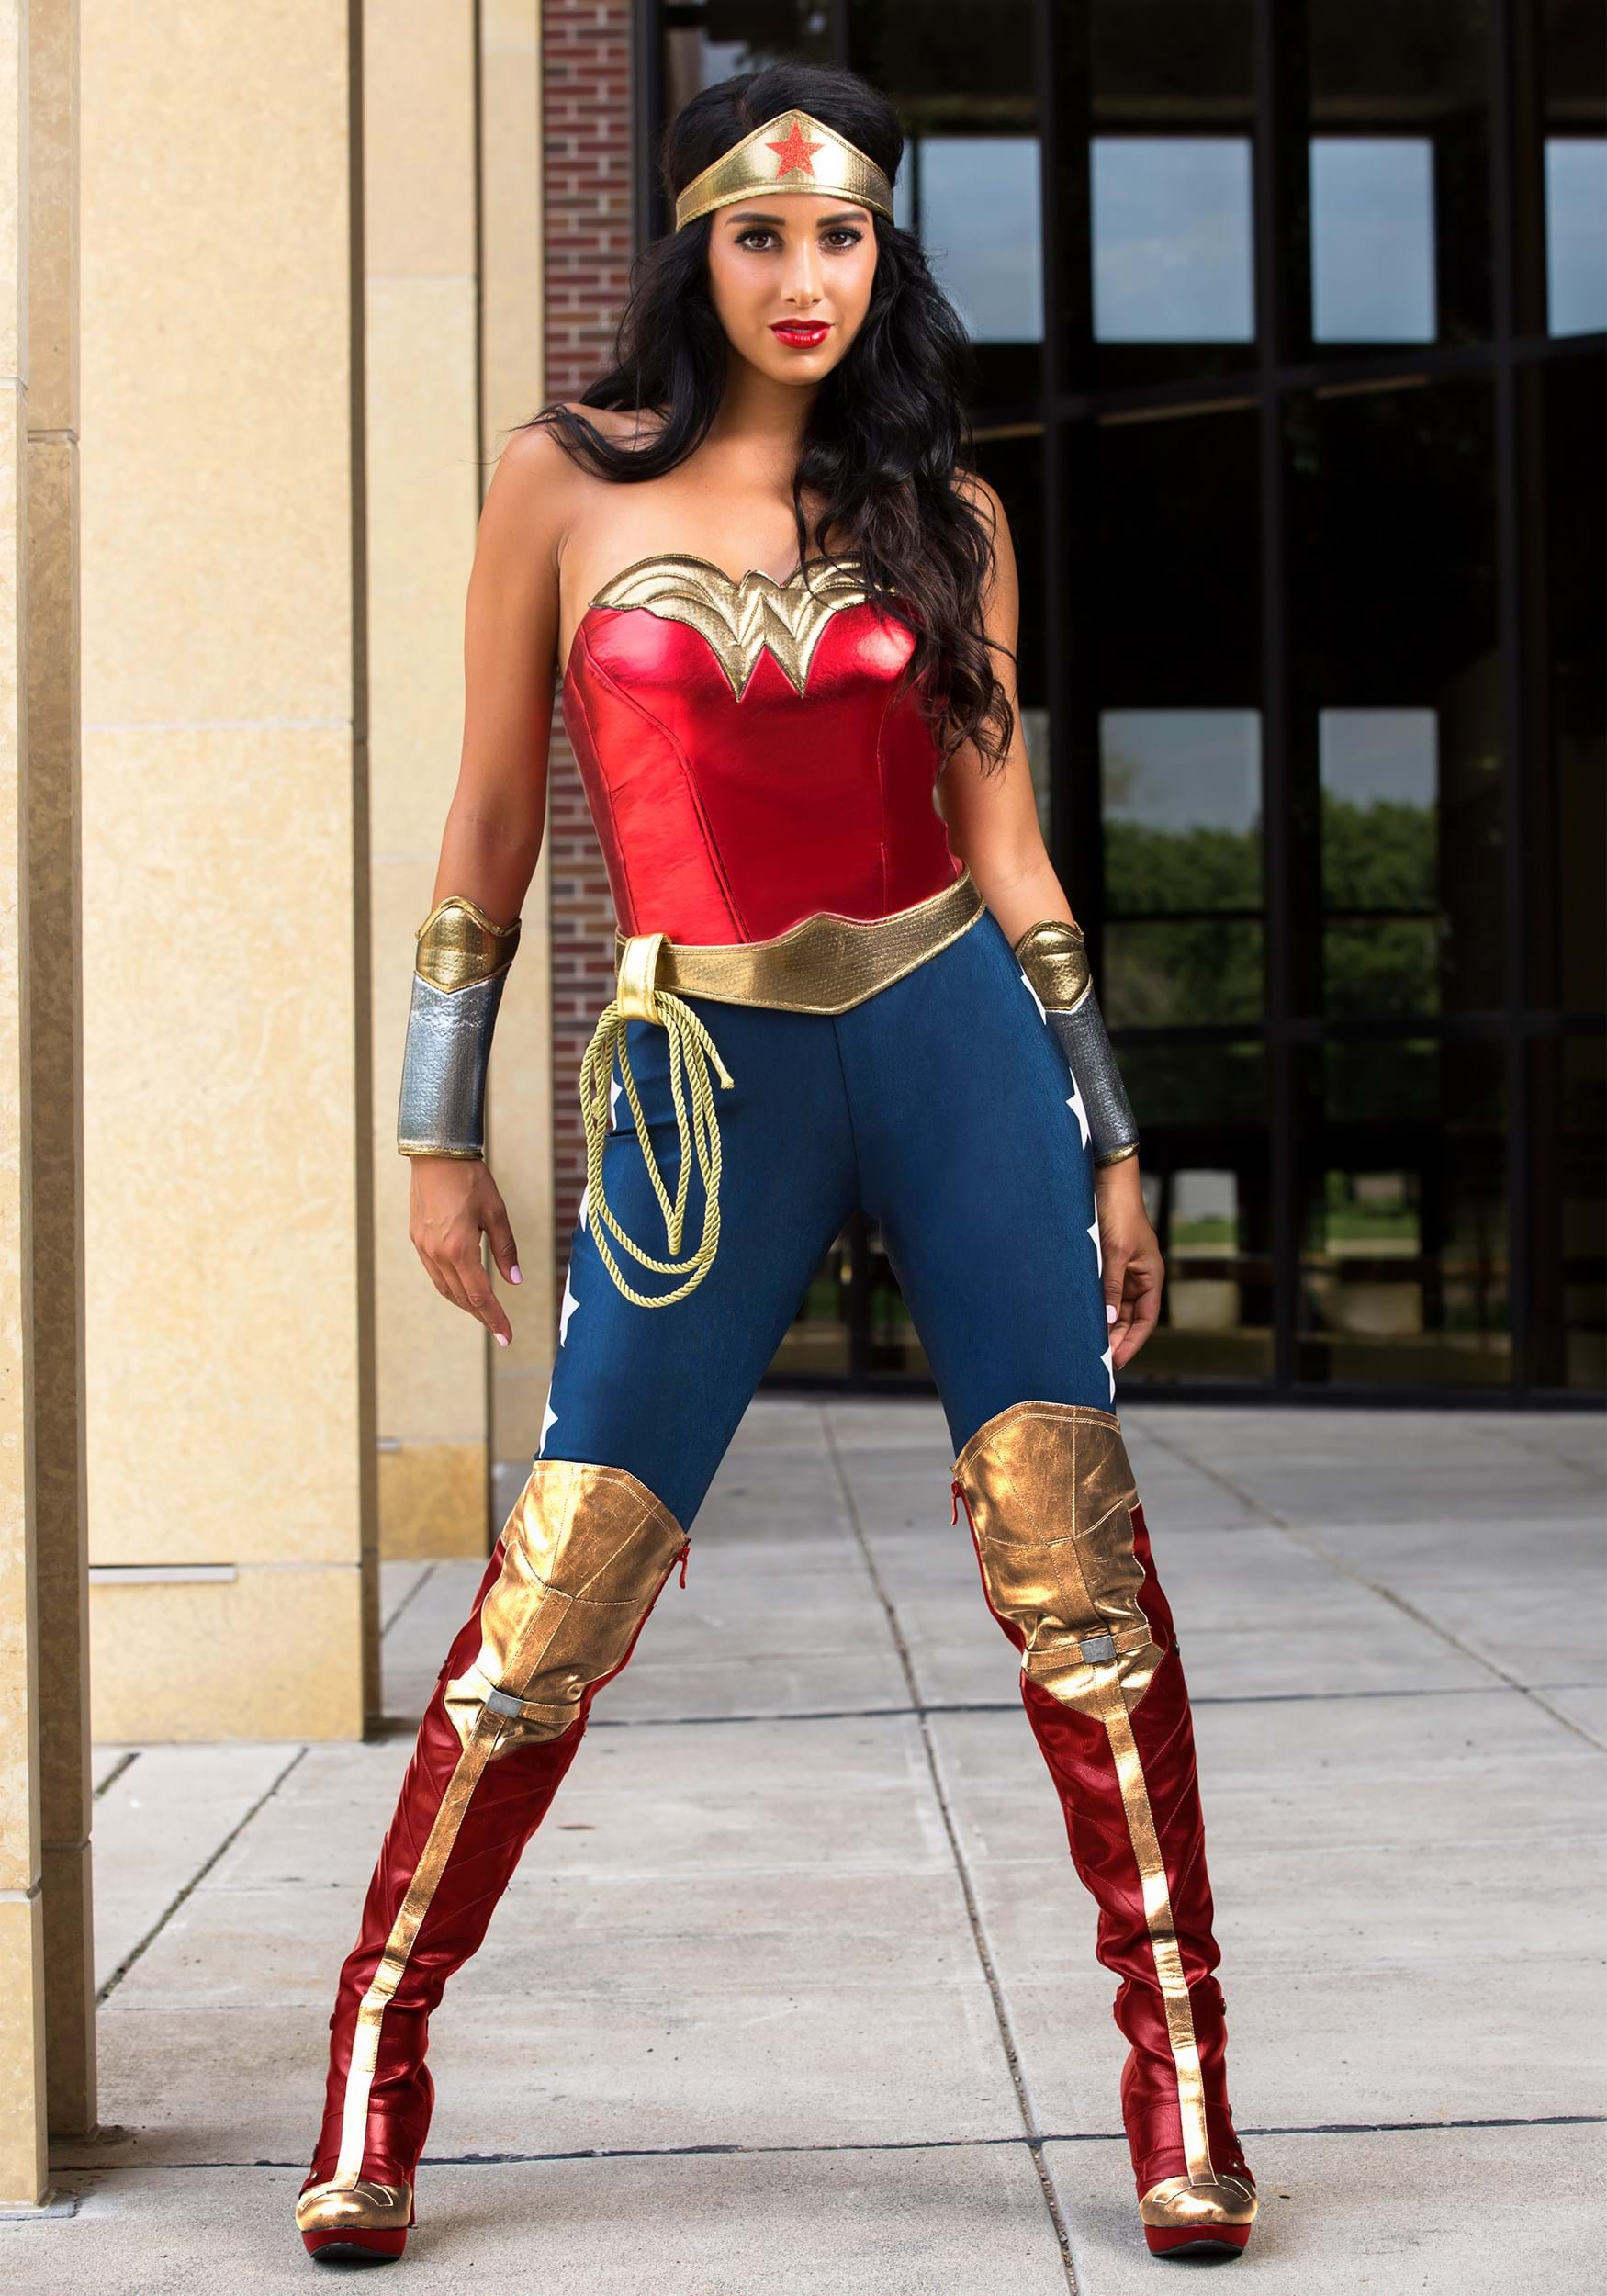 73befc371177 DC Wonder Woman Adult Costume